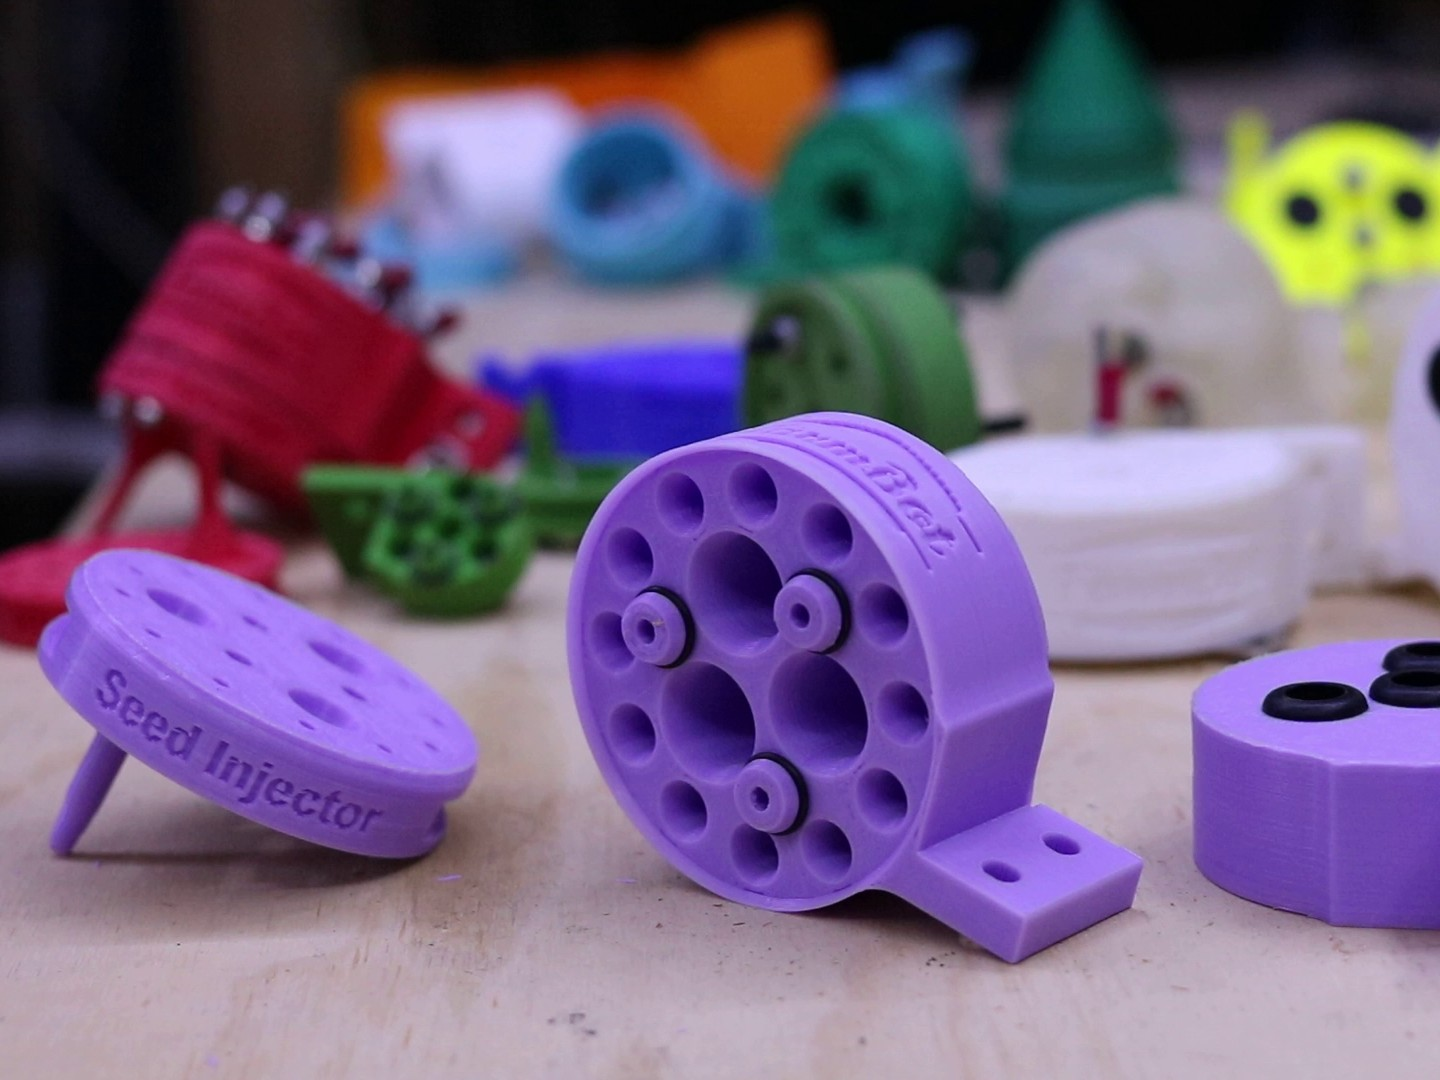 Spare parts can be 3D printed (Courtesy Farmbot)